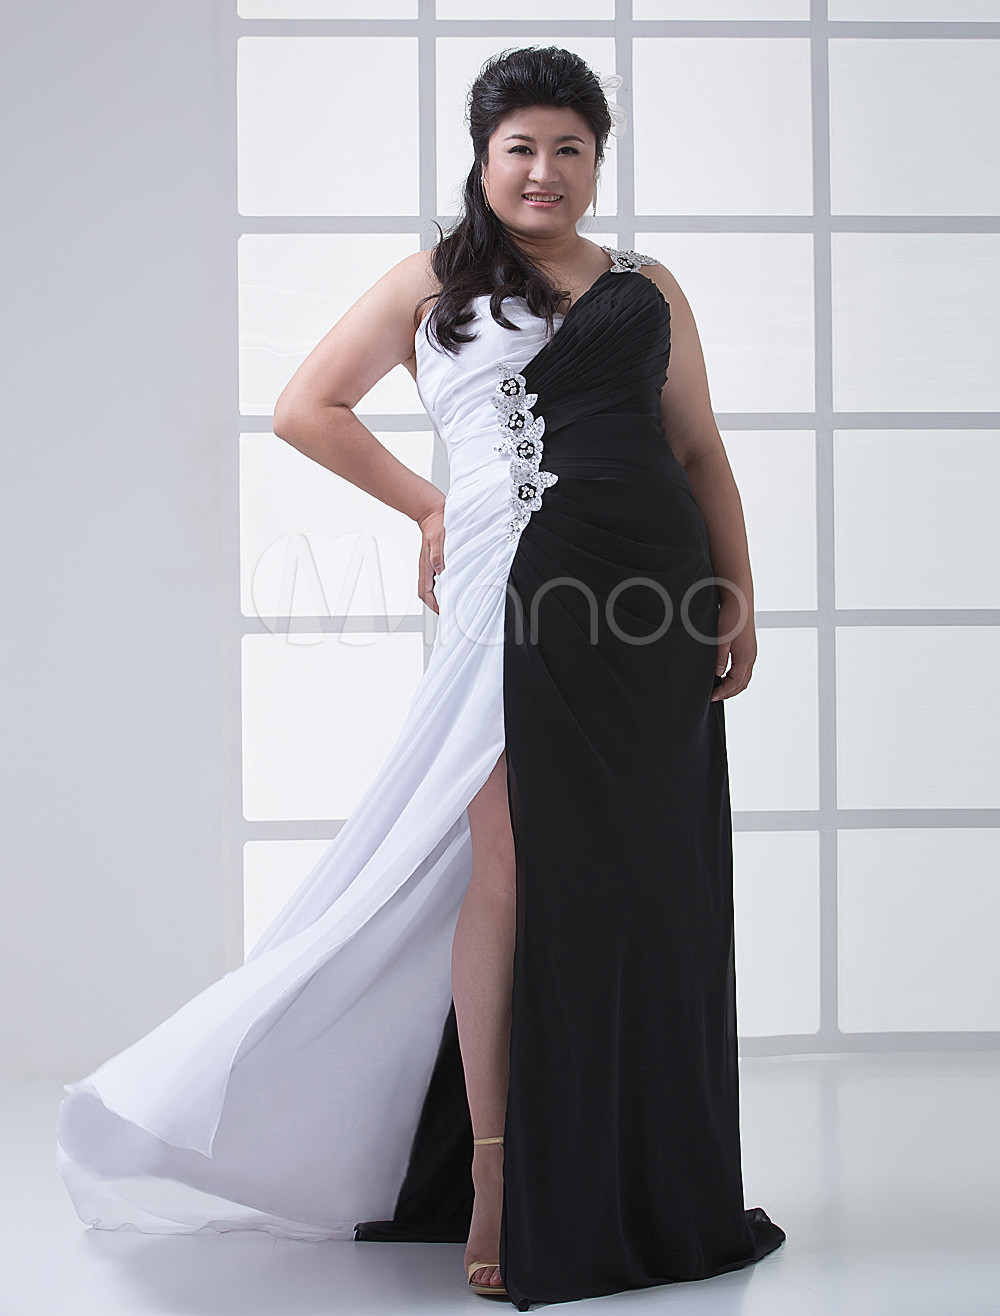 Unique Black White Chiffon Spaghetti Strap Plus Size Prom Dress